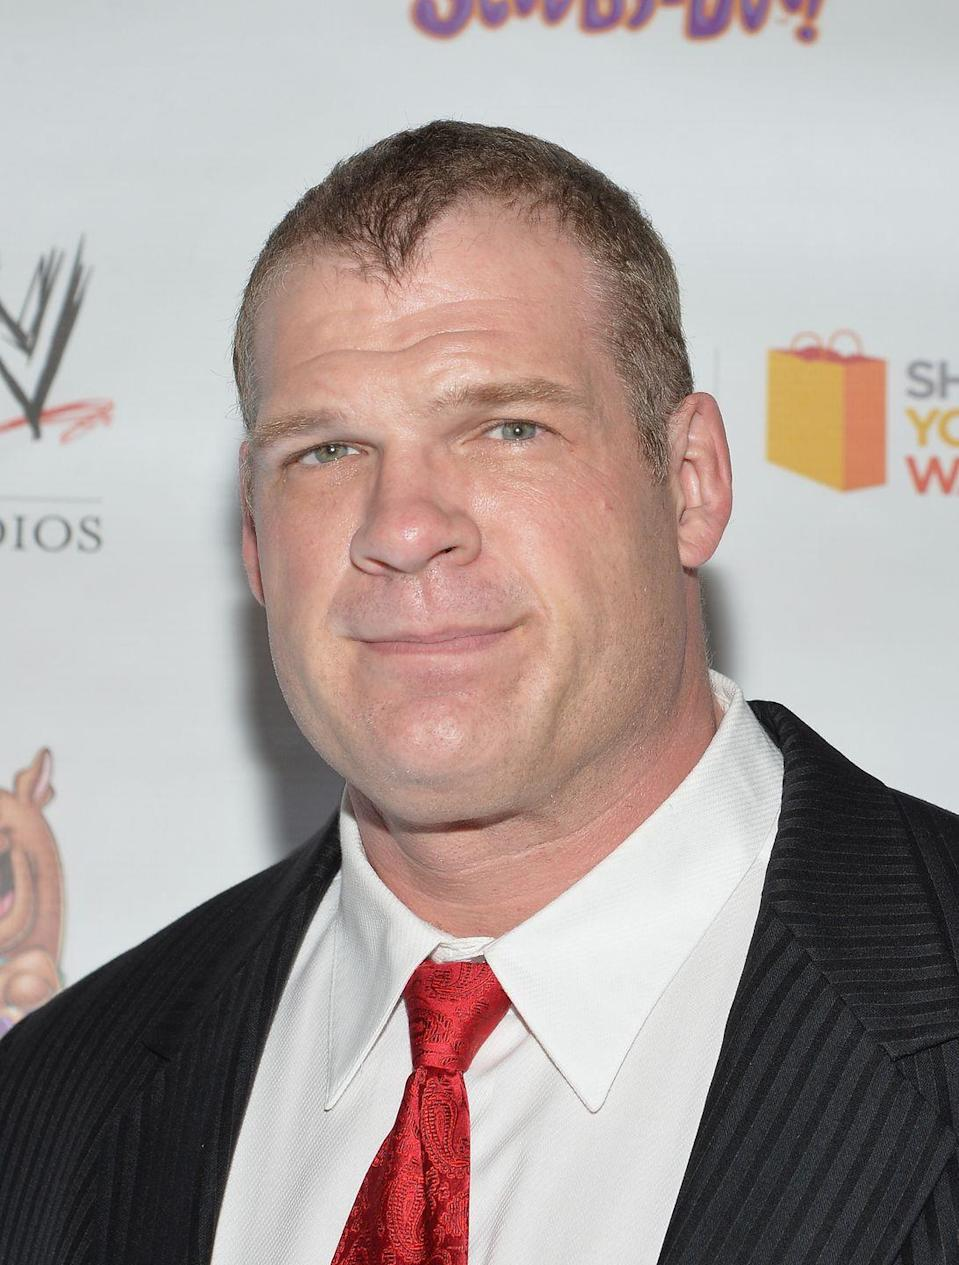 <p>Former WWE wrestler Glenn Jacobs announced he would be making a bid to become the mayor of Knox County, Tennessee in 2017. In August 2018, he won over Democratic nominee Linda Haney.</p>